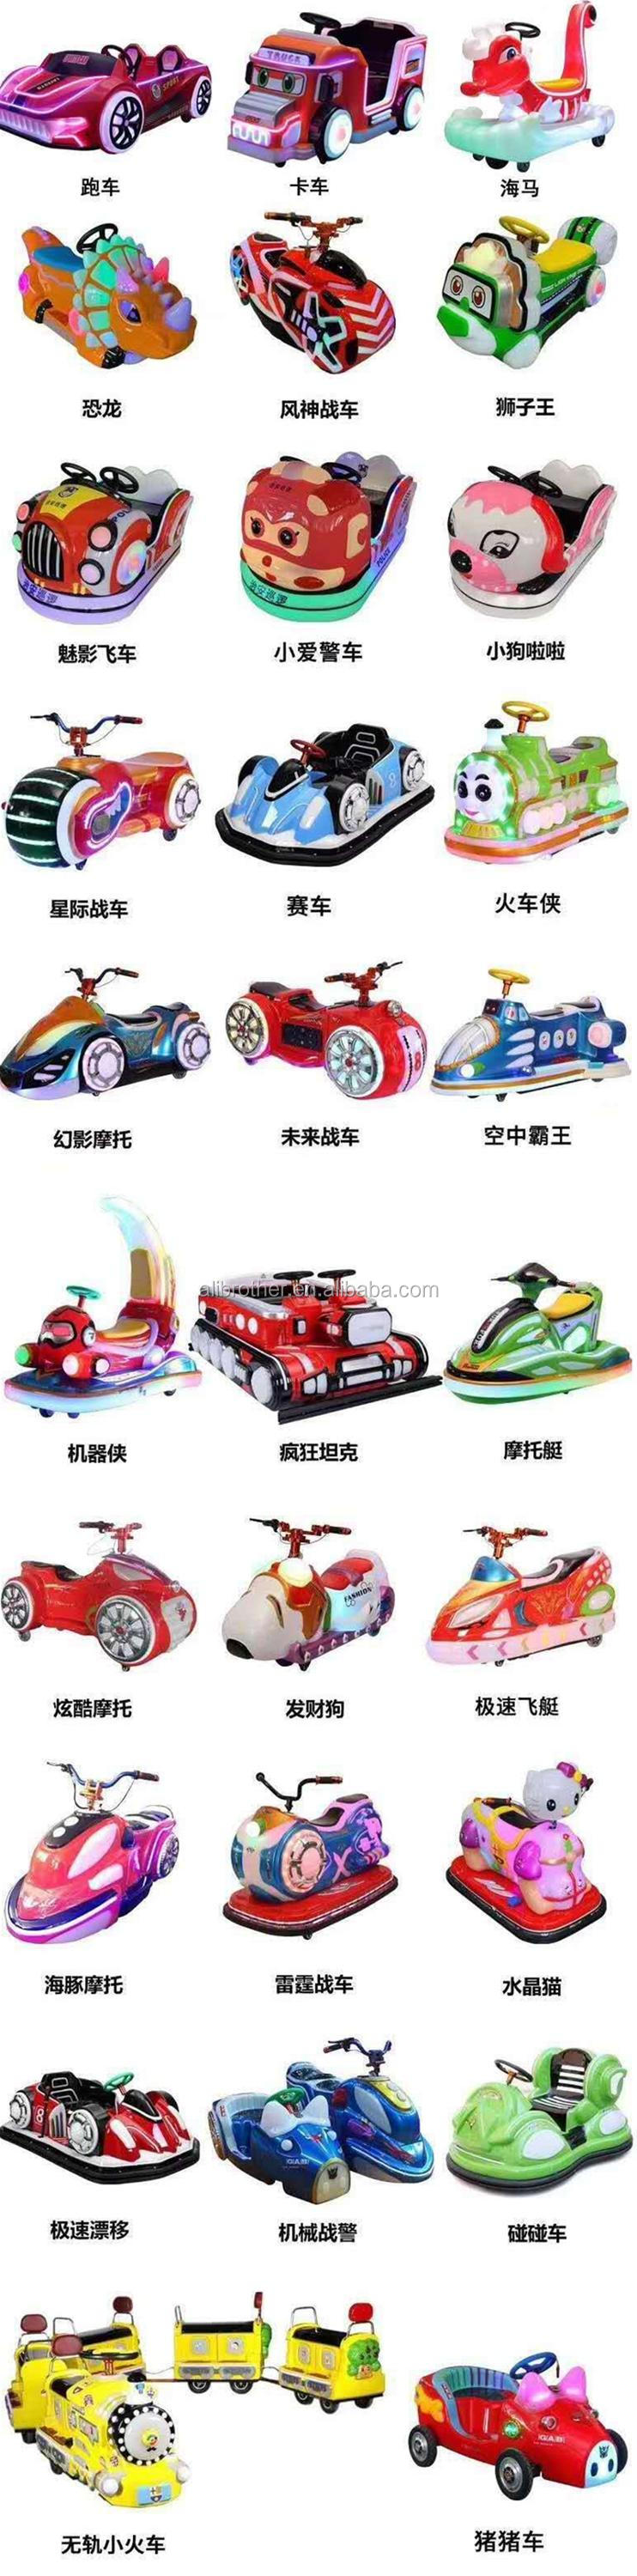 Kids game machine, Battery drift racing car rides ,Fiberglass Battery ride on car